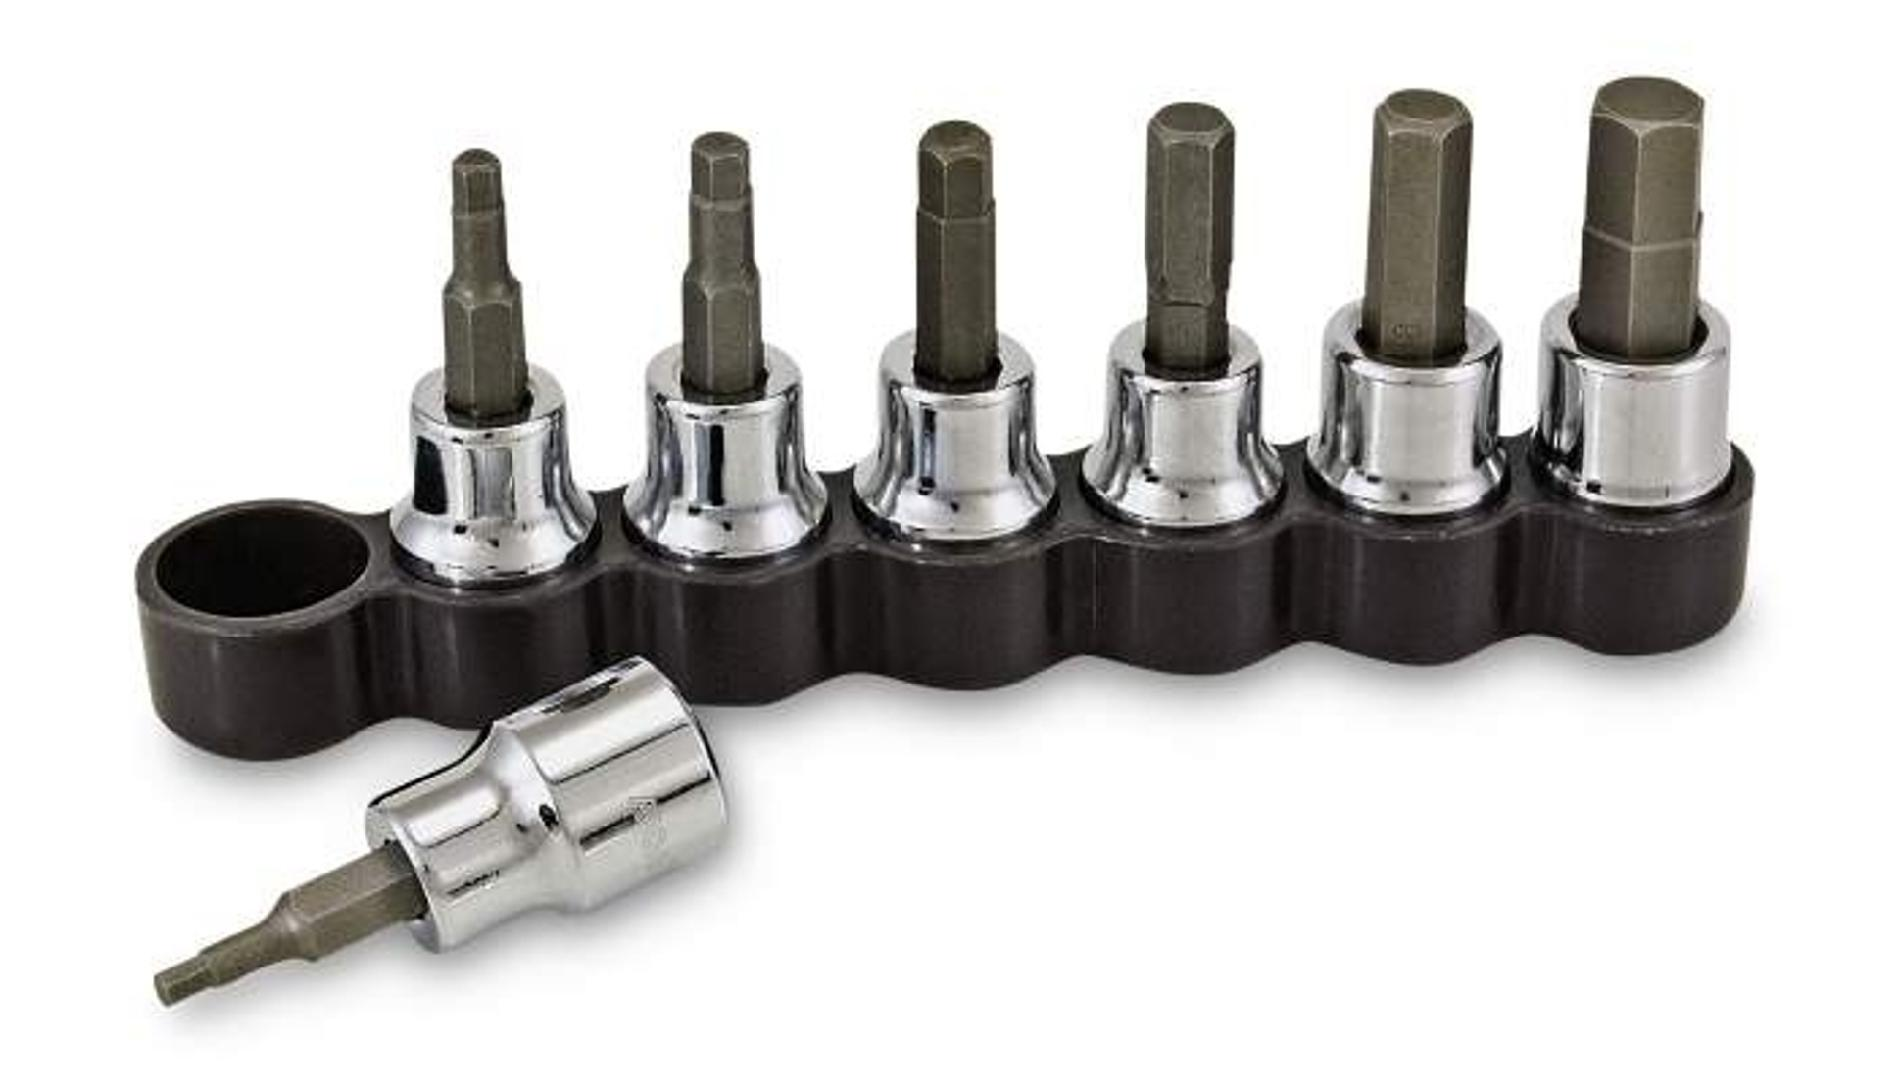 Craftsman Evolv 7-pc. Hex Bit Socket Set Metric